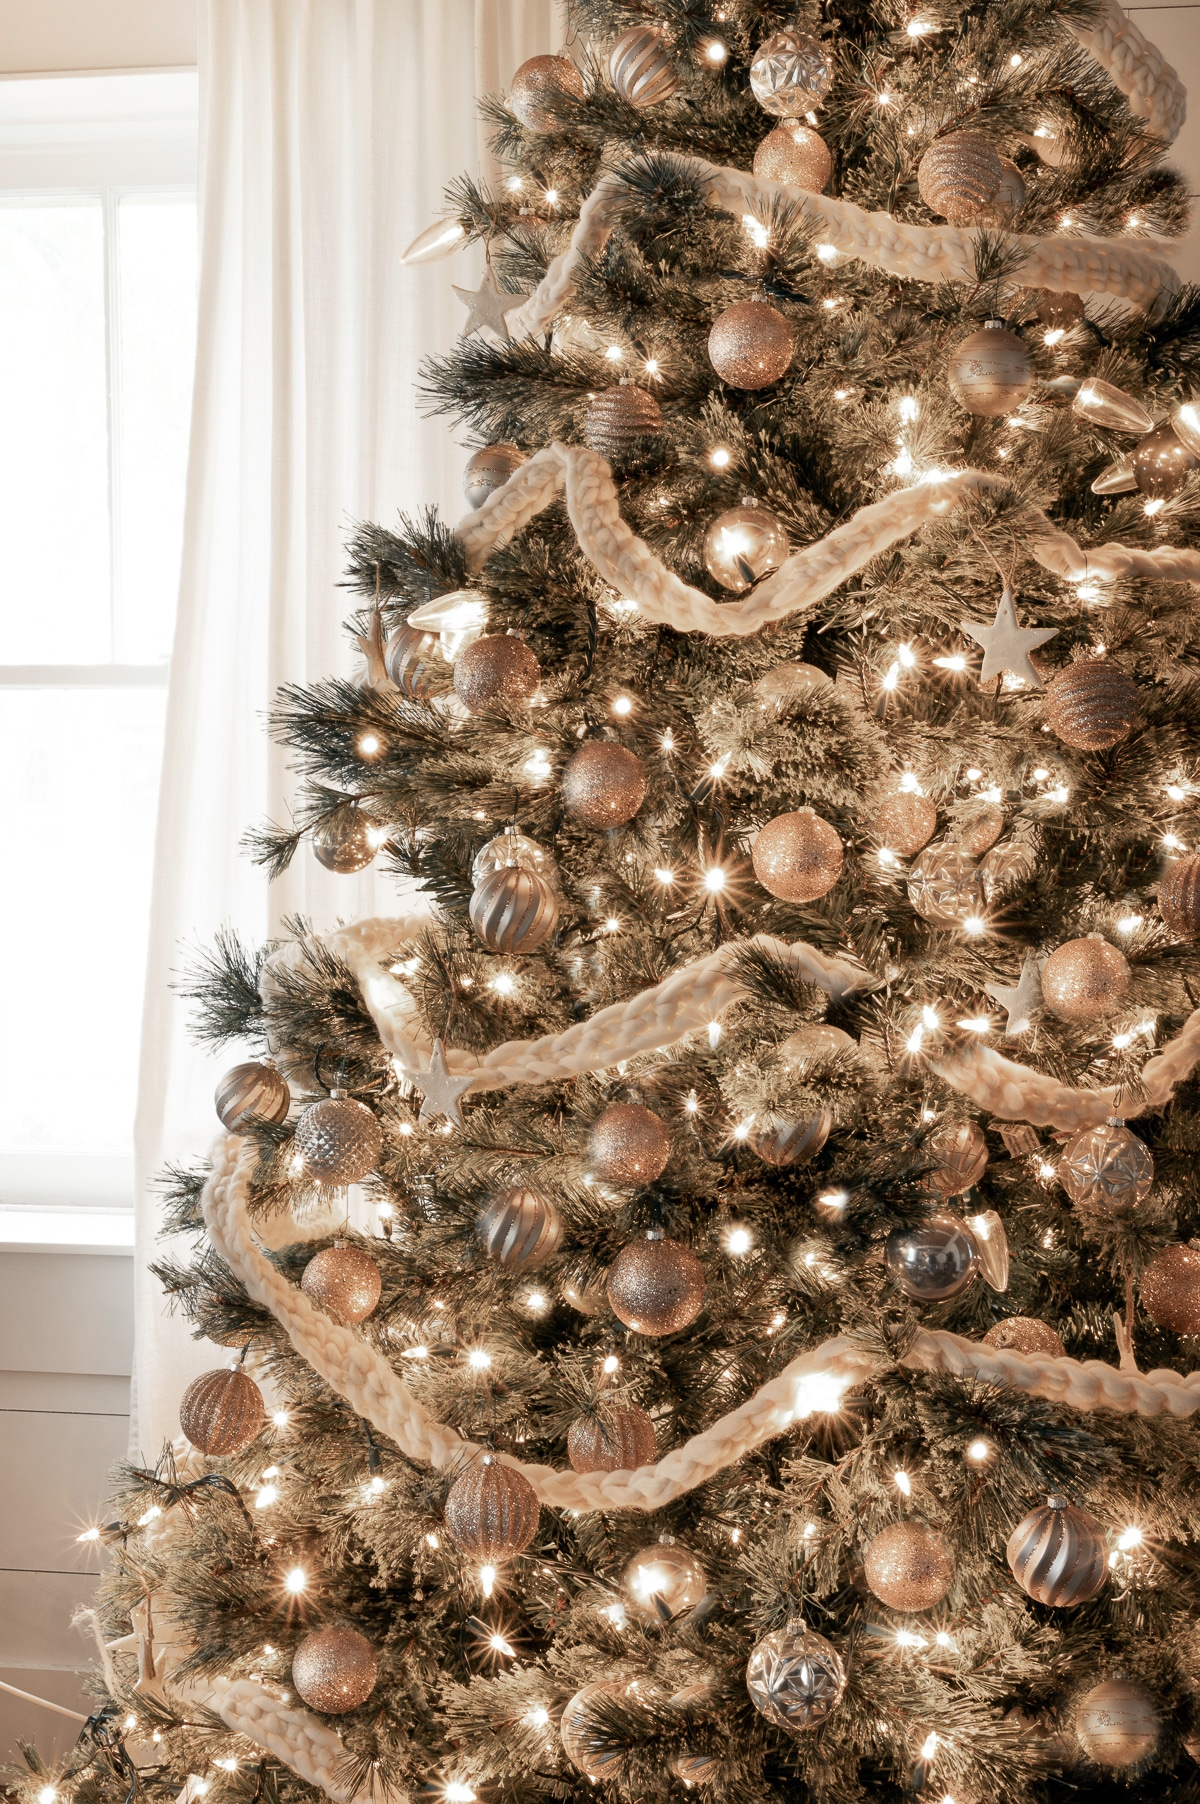 Monochrome Christmas tree with gold and silver ornaments and bright yellow white lights with a  cream colored homemade crochet garland.